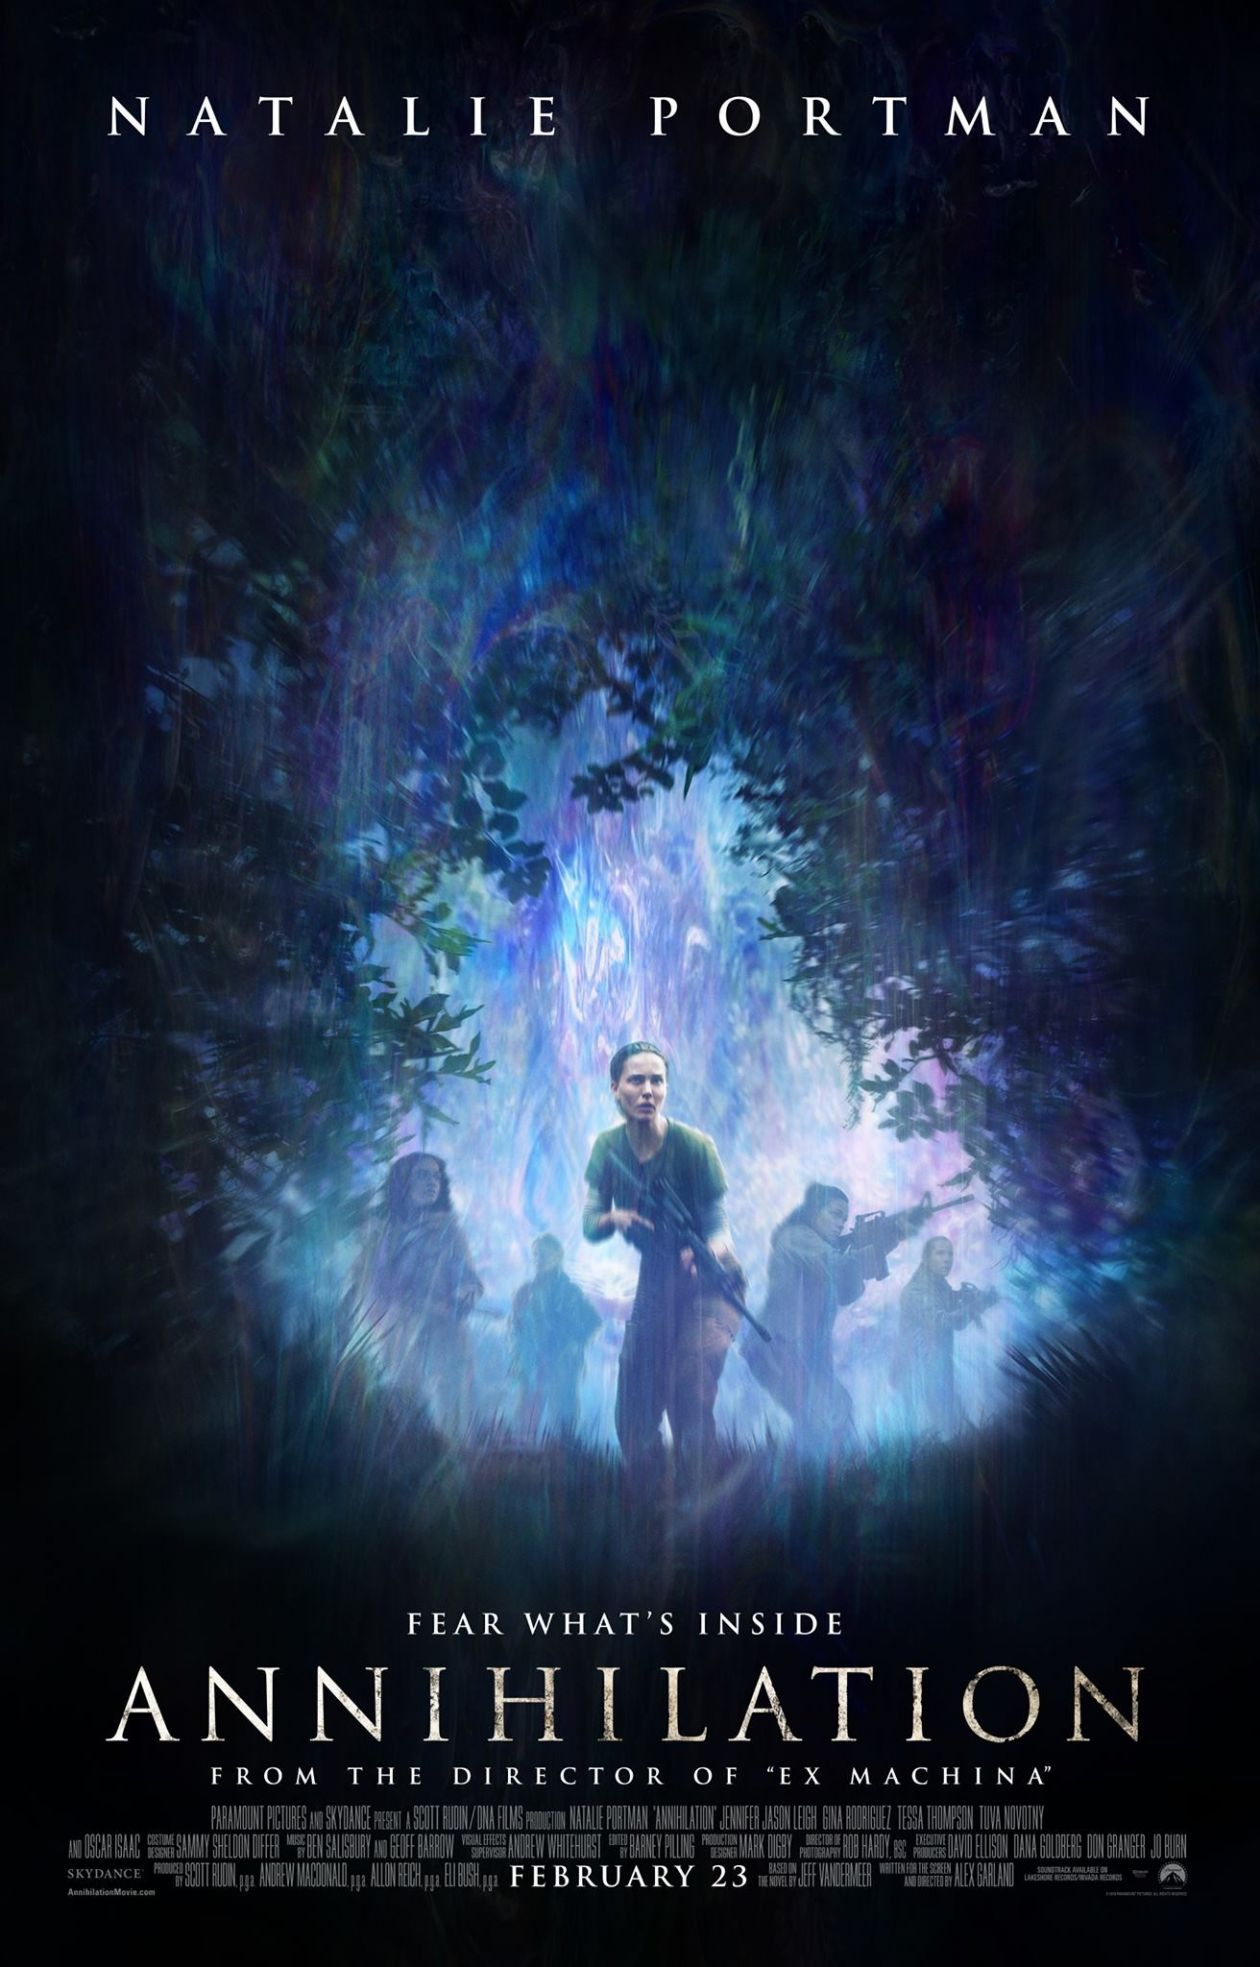 Natalie Portman / Annihilation / Alex Garland 2018 / Movie Poster / Affiche film